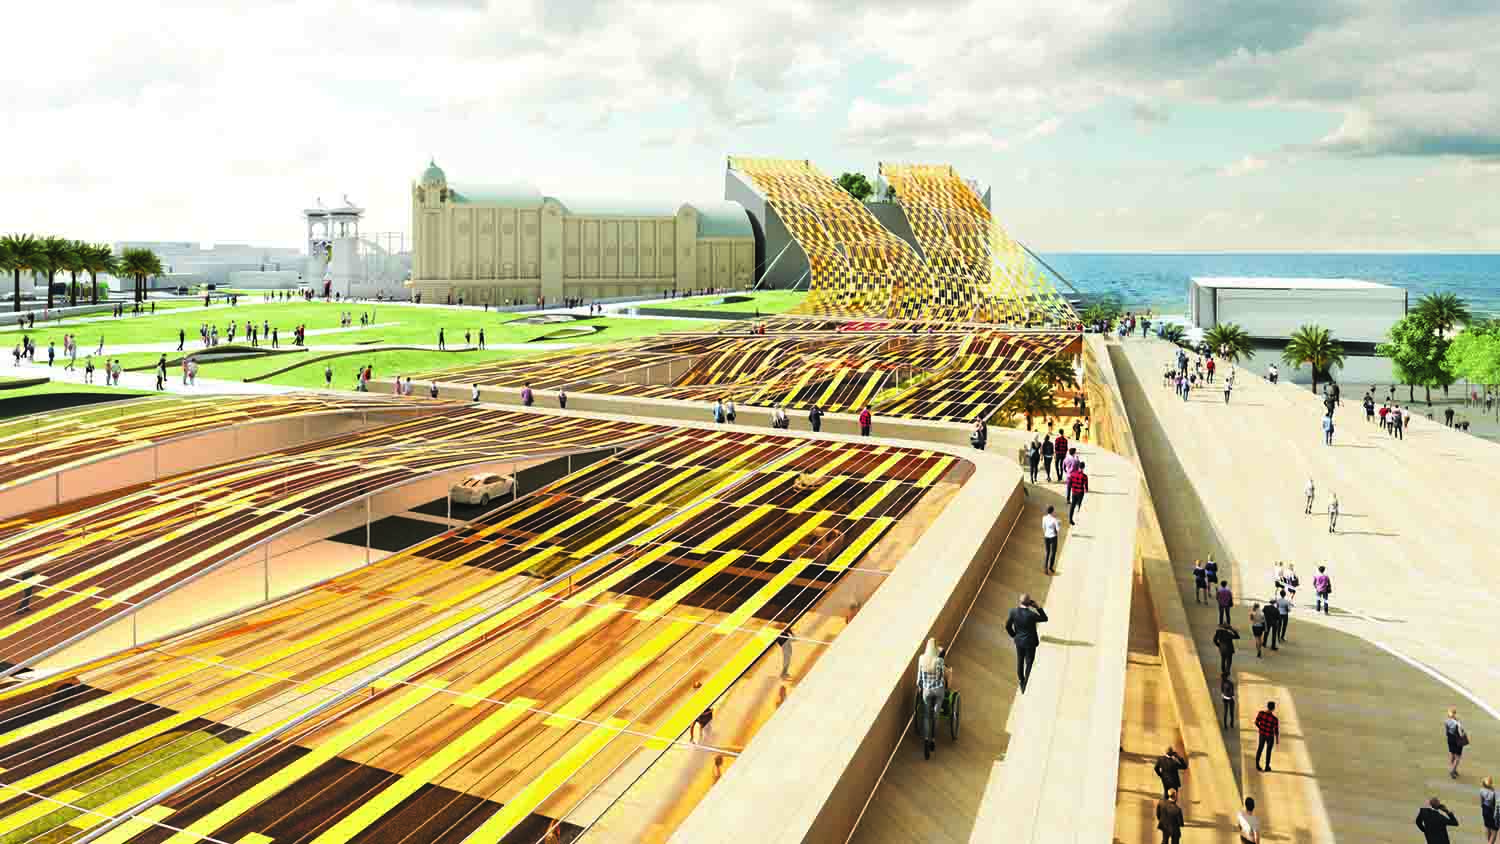 LAGI 2018, Land Art Generator Initiative, solar energy, wind energy, renewable energy, public art, St Kilda Triangle, Melbourne, City of Port Phillip, Victoria, Australia, Light Up, solar energy, wind energy, green roof, flexible mono-crystalline silicon photovoltaic, Plant-e® microbial fuel cells